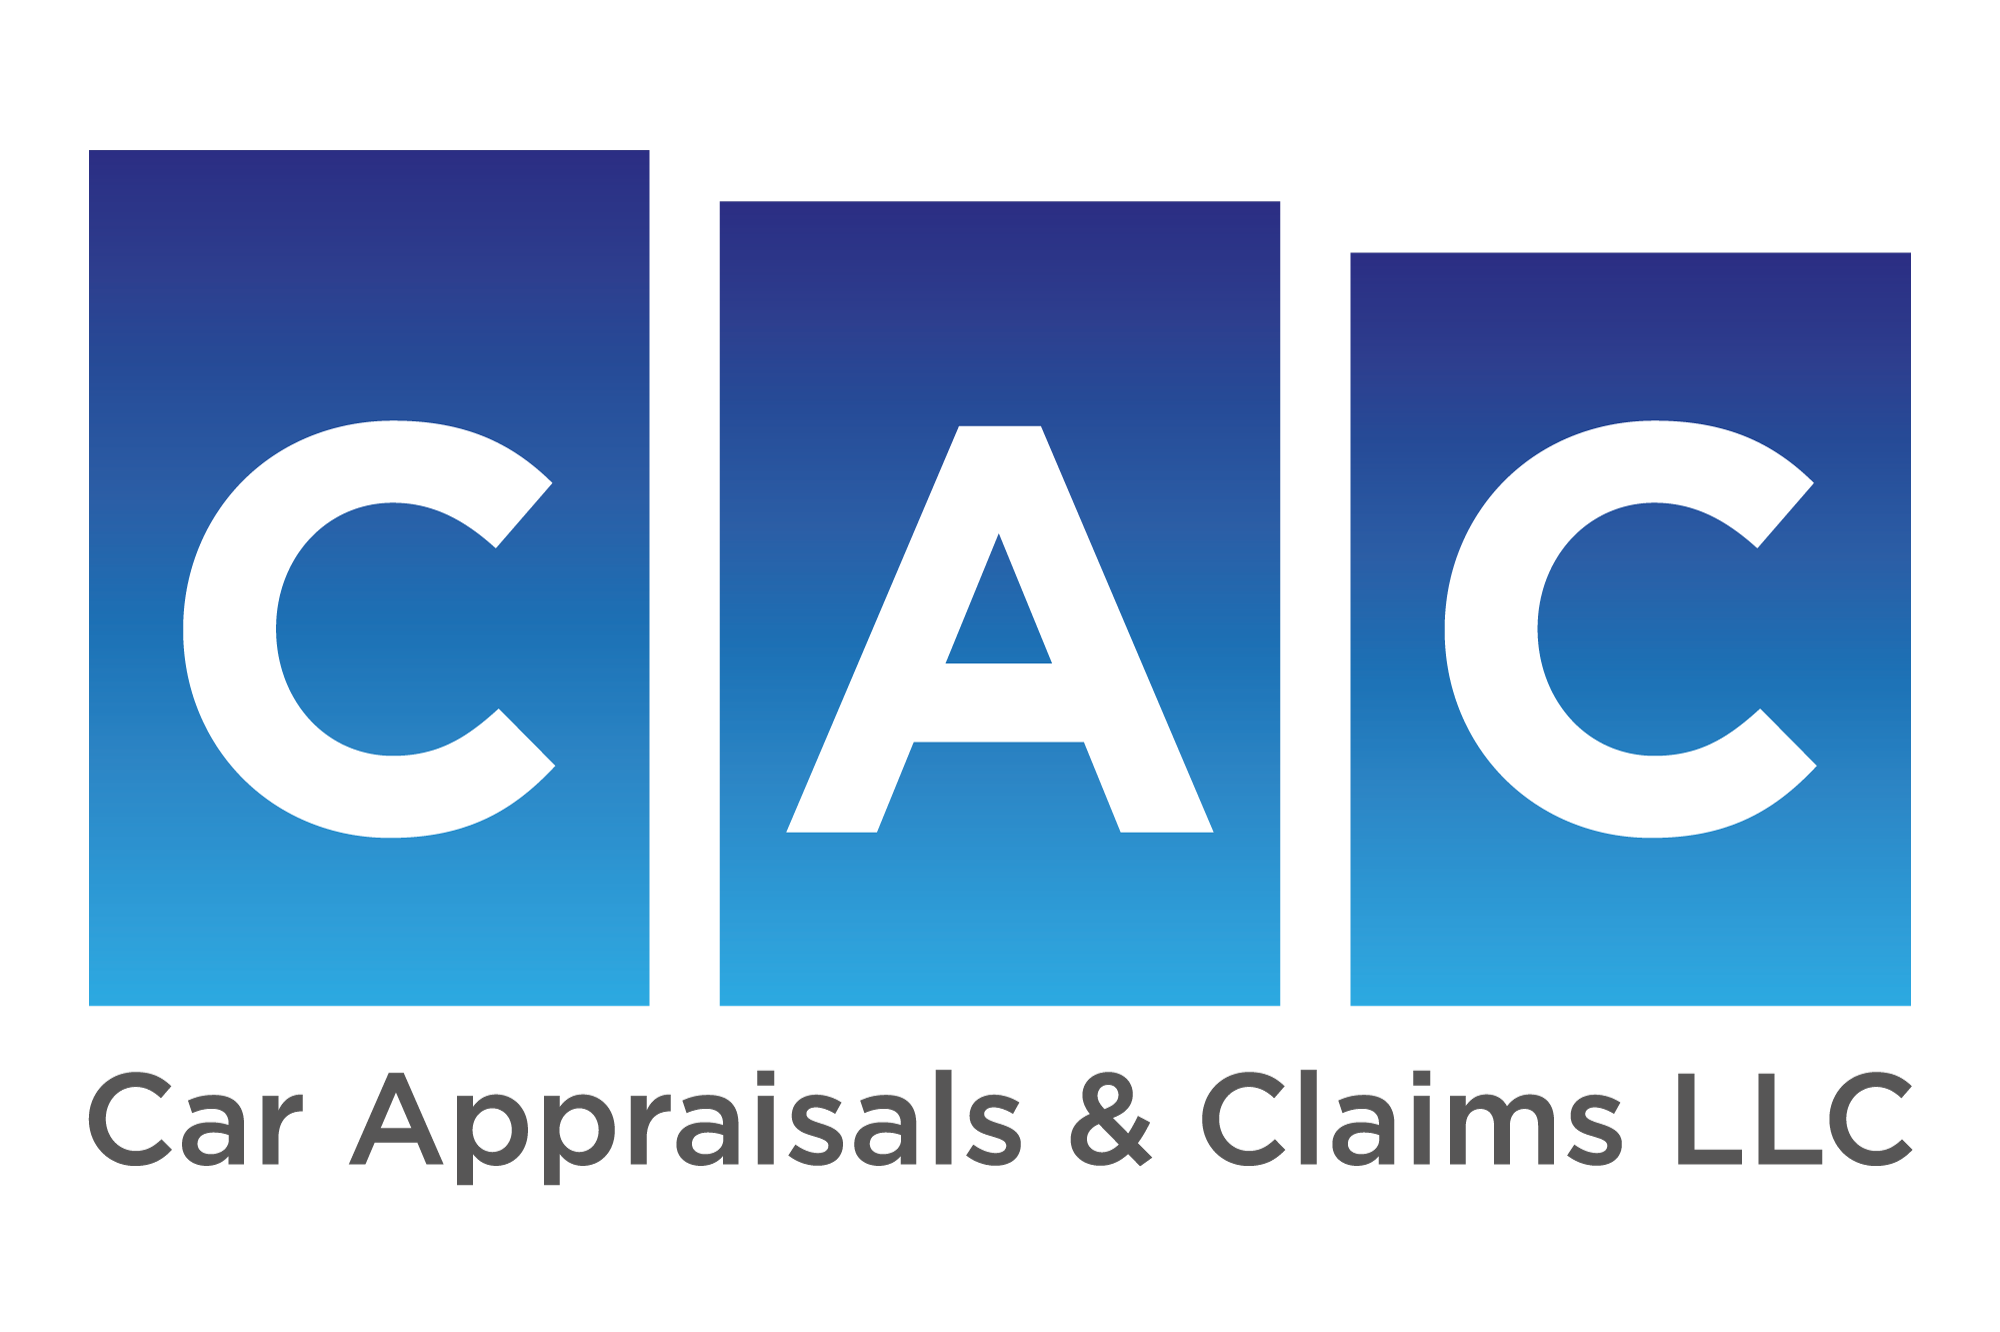 Texas Car Inspection >> Car Appraisals & Claims LLC is Now Hiring Vehicle Valuation Experts and Auto Damage Appraisers